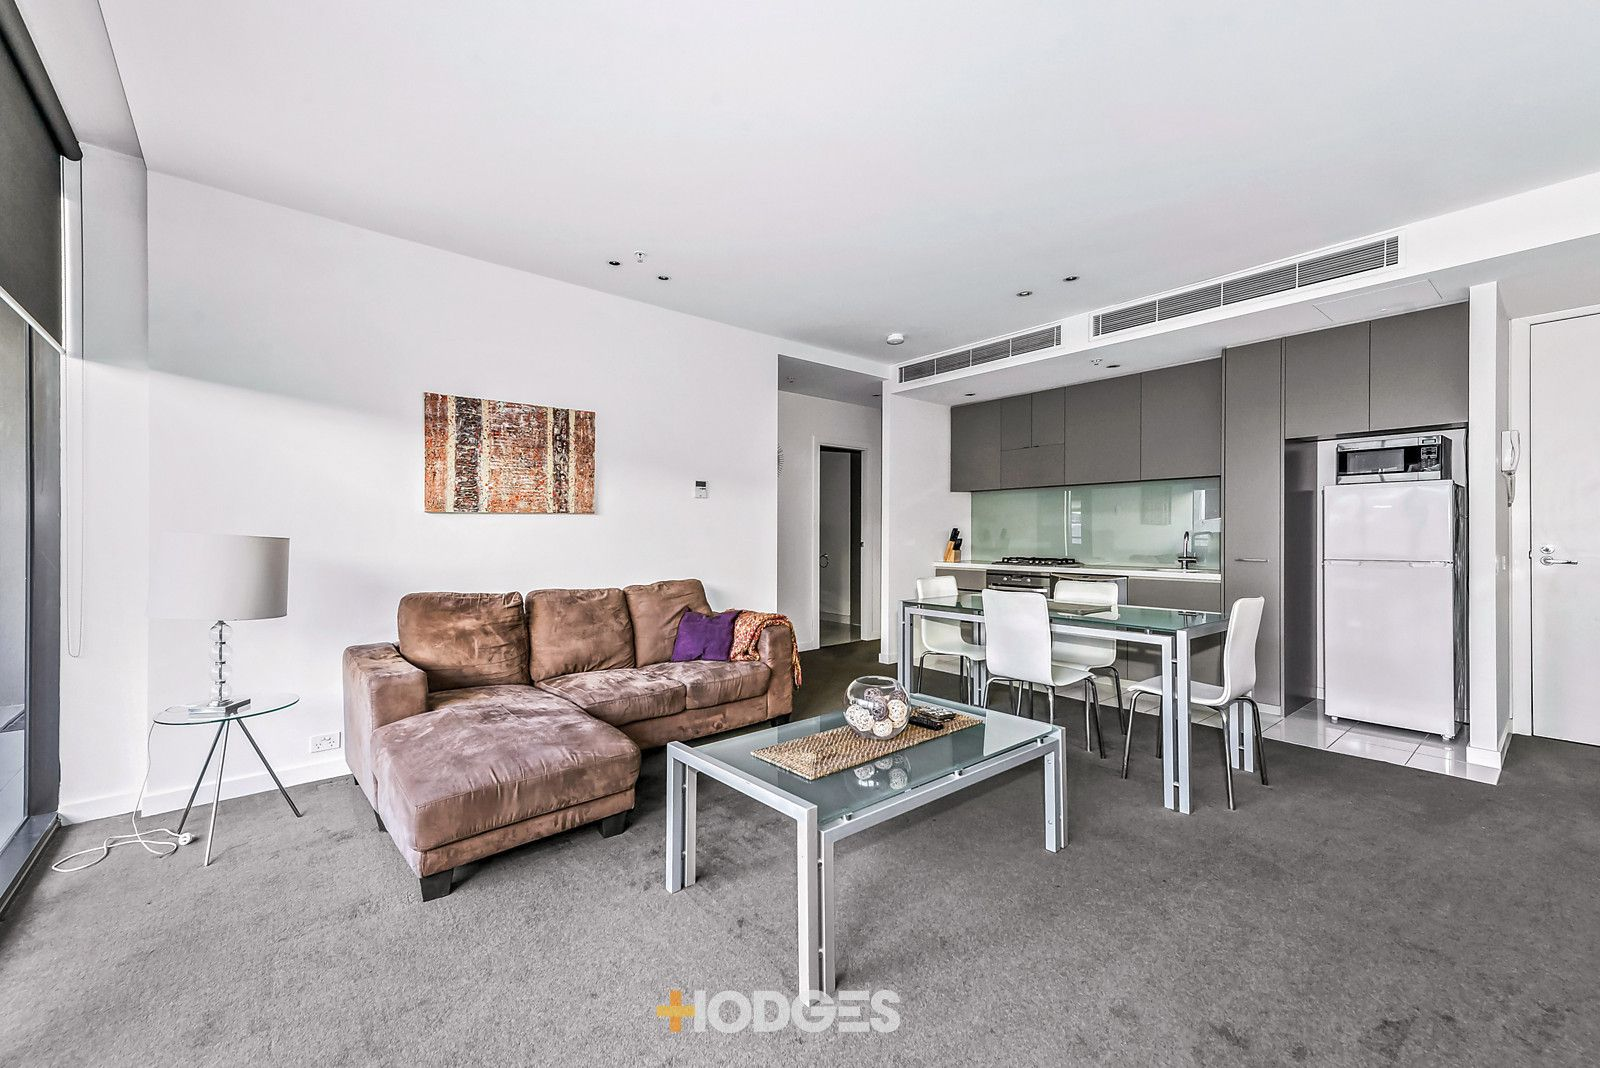 105/55 Queens Road, Melbourne 3004 VIC 3004, Image 2